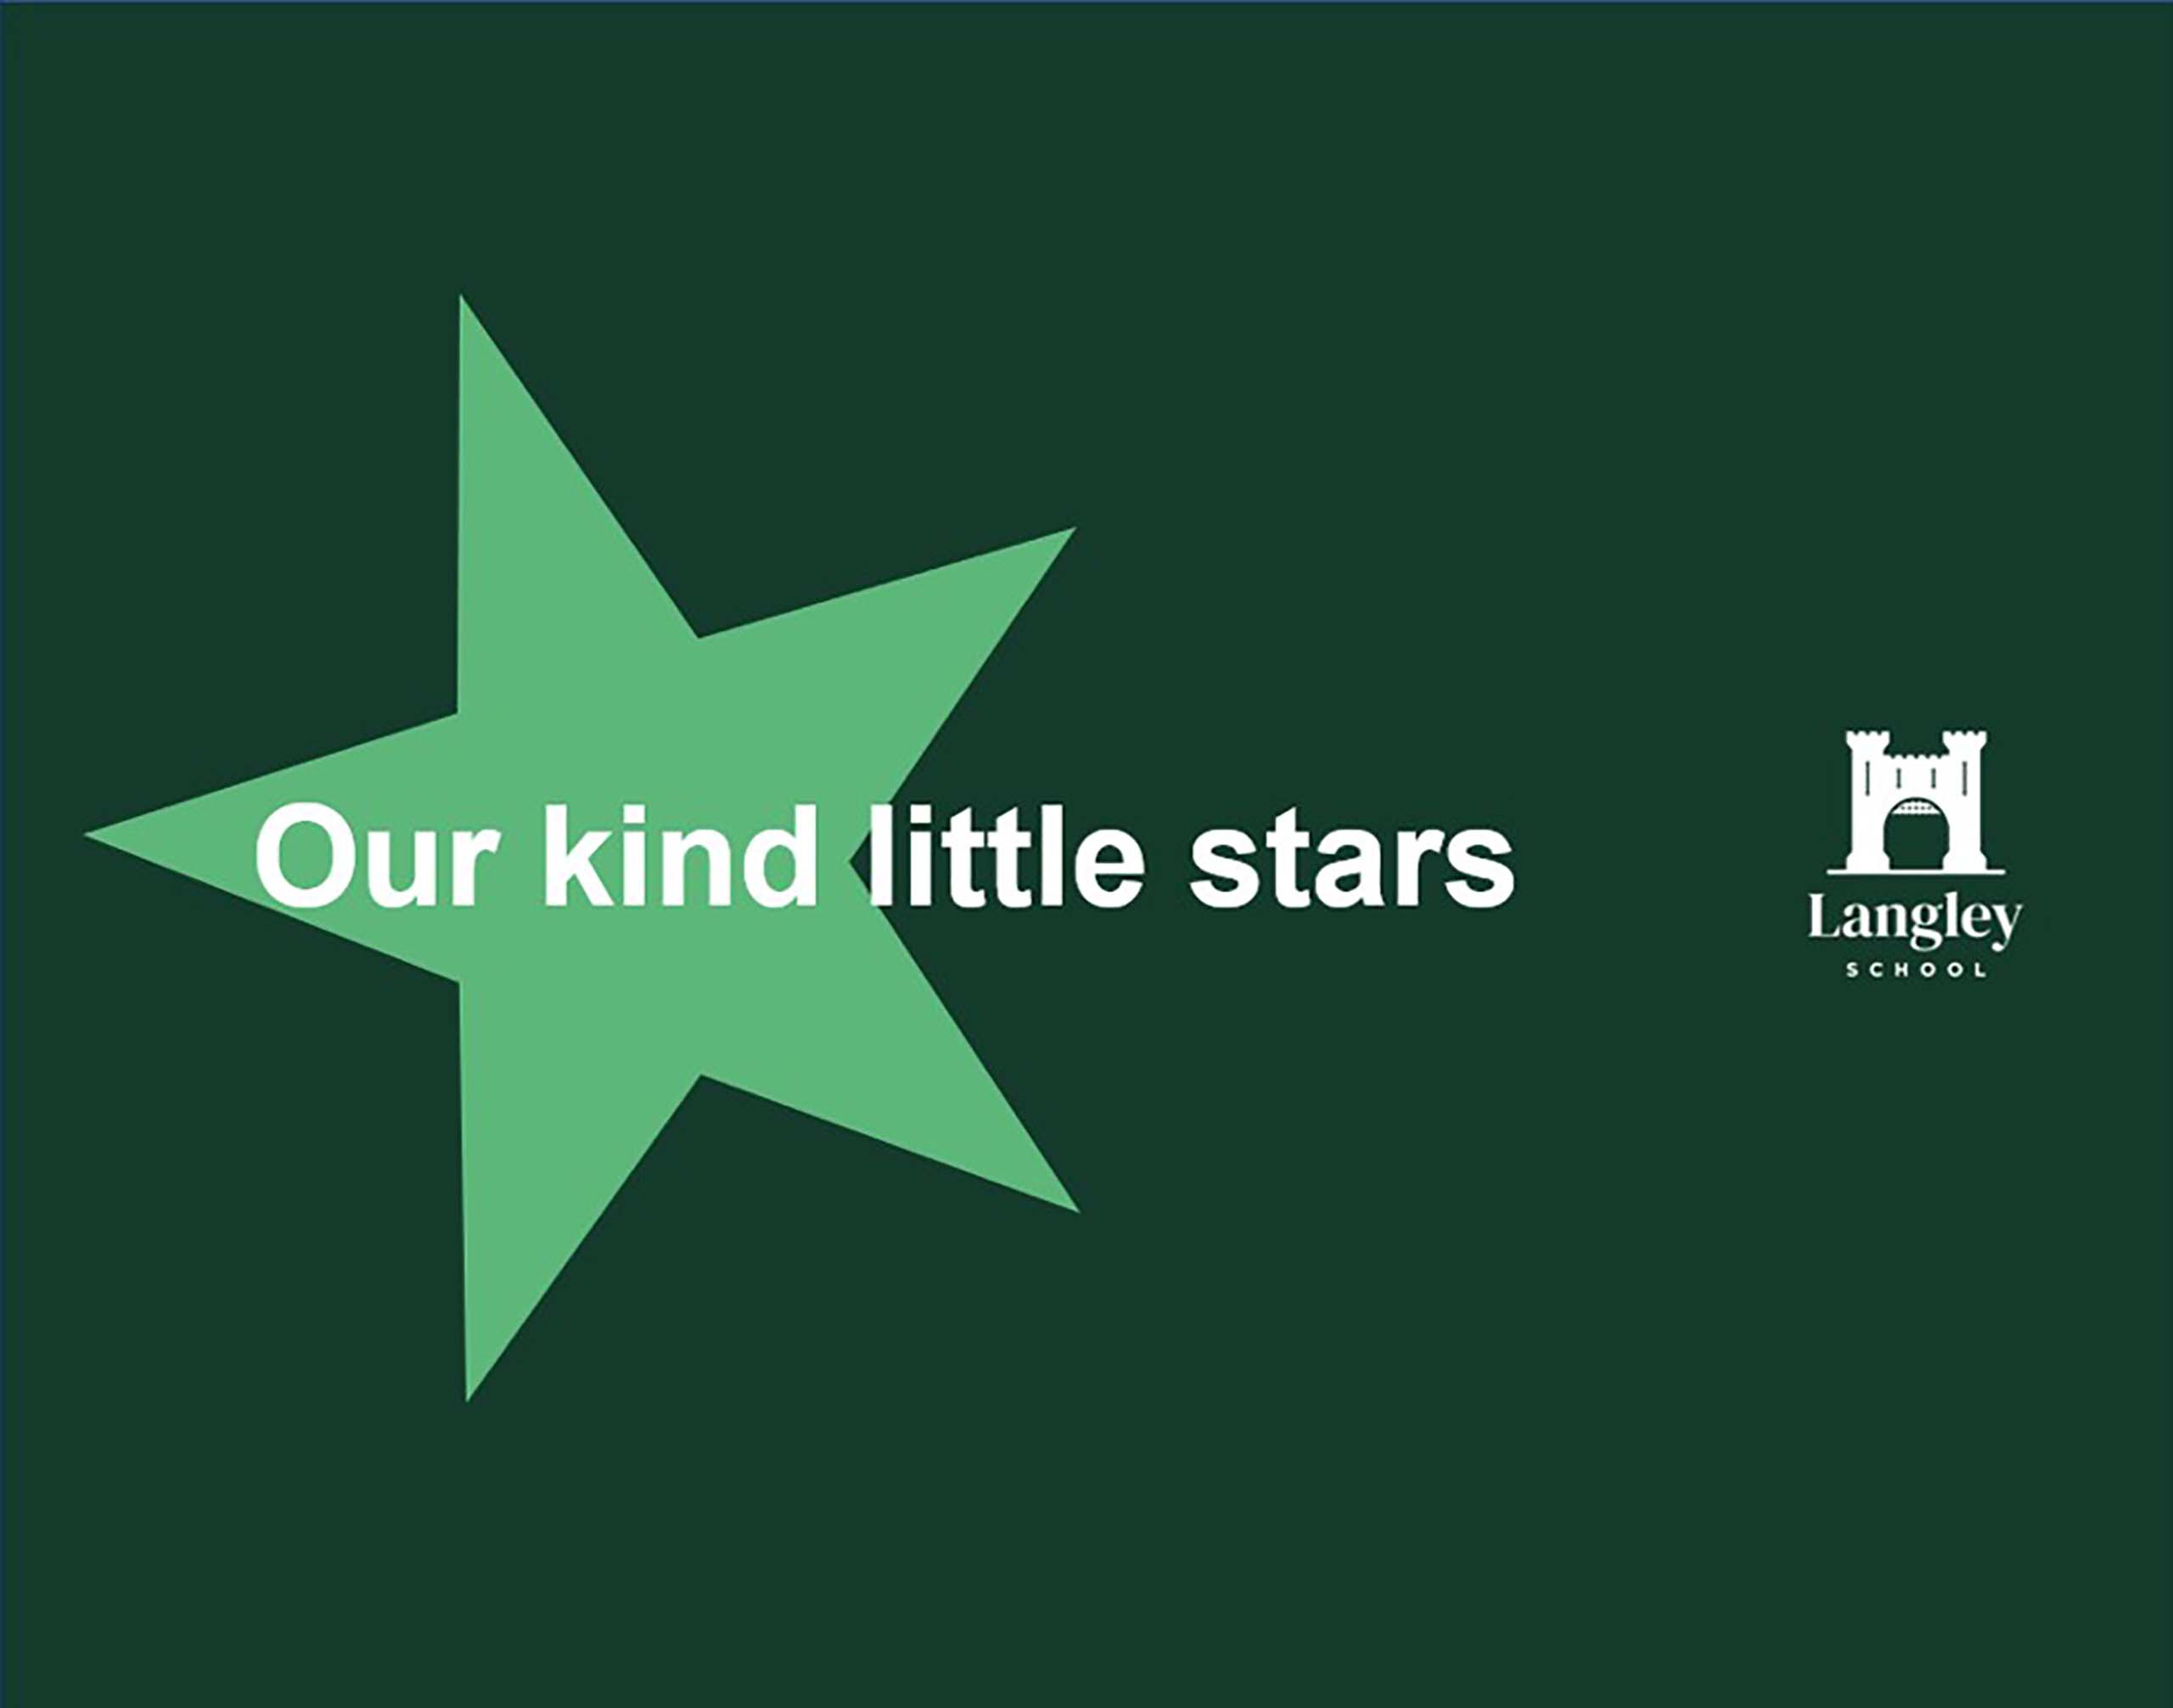 Our kind little stars 1